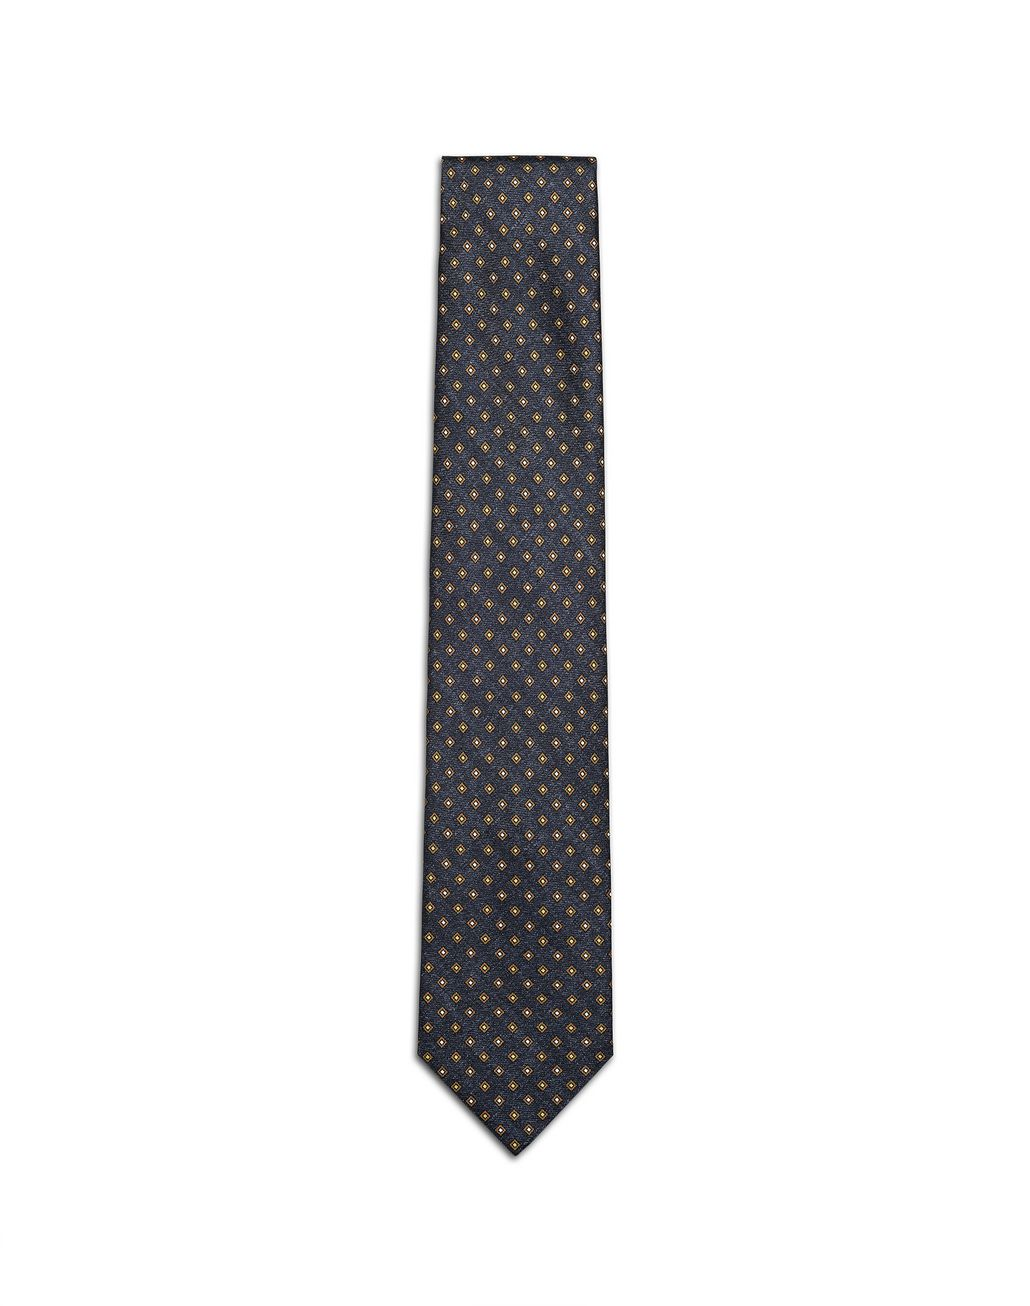 BRIONI Navy-Blue and Mustard Micro-Design Tie Tie Man f